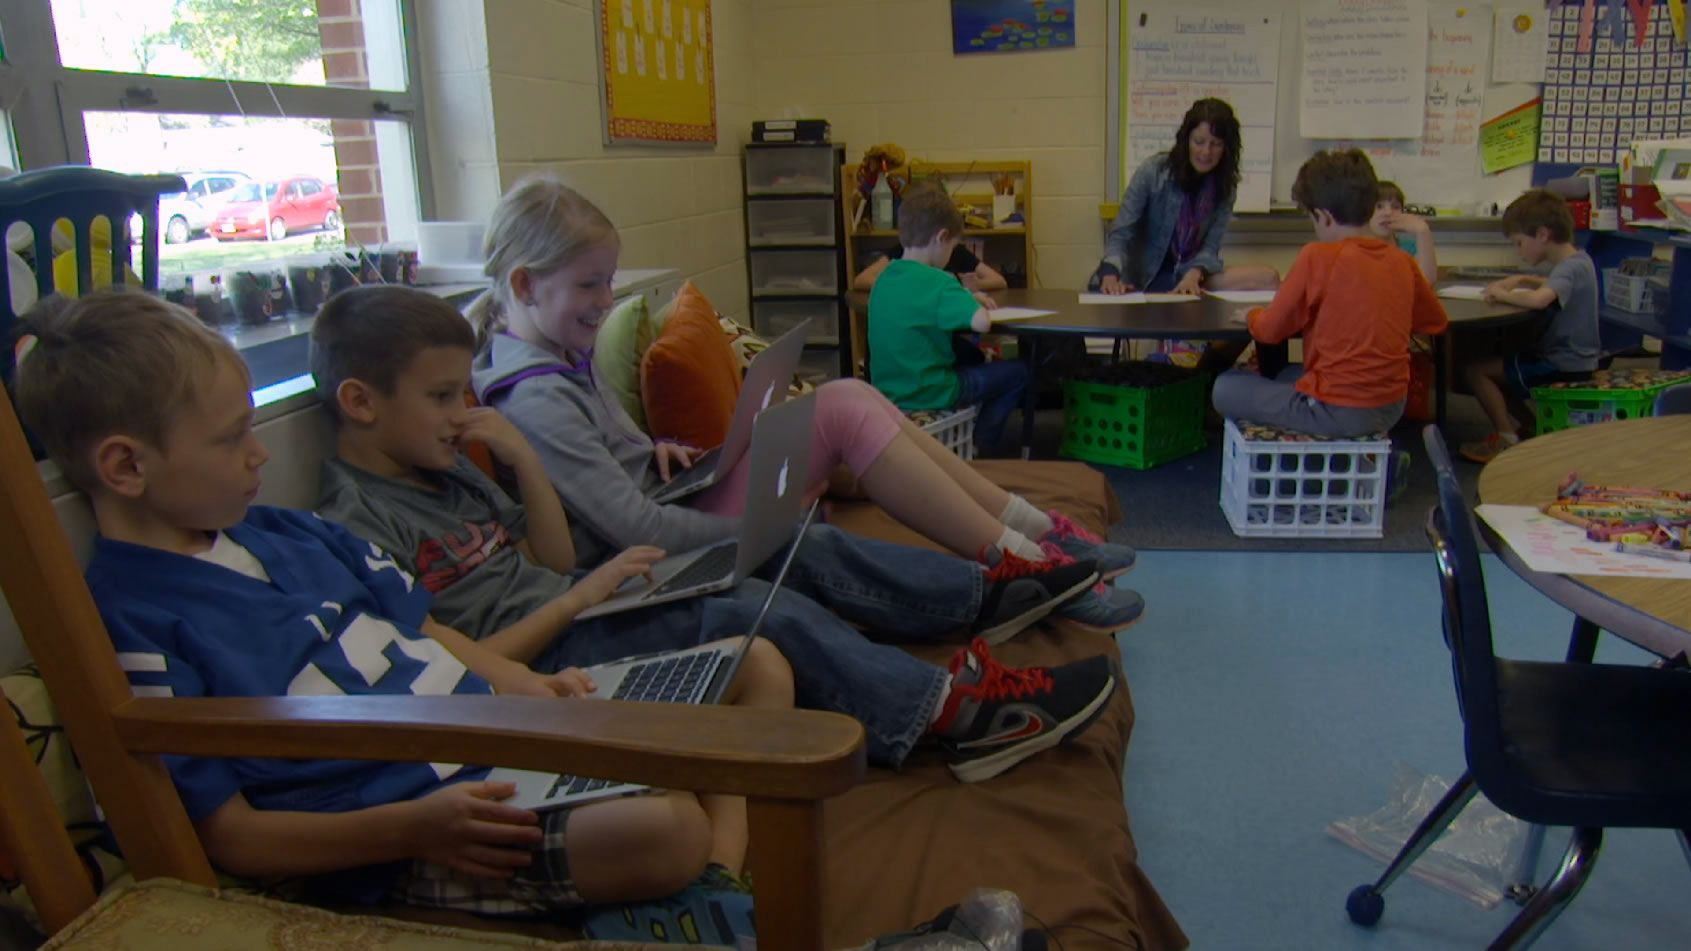 Classroom Design Aids Student Learning ~ Flexible seating elevates student engagement edutopia